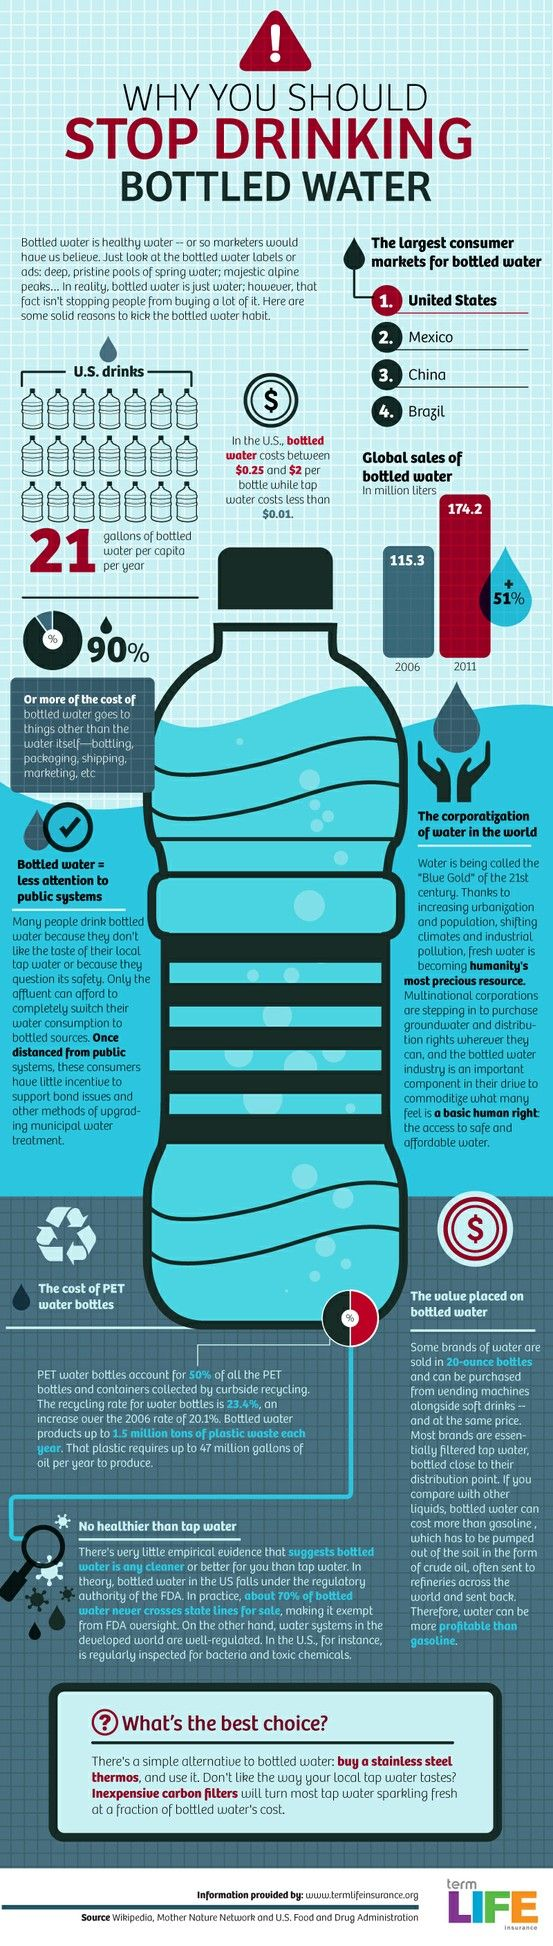 Why You should stop drinking bottle water...for your health!